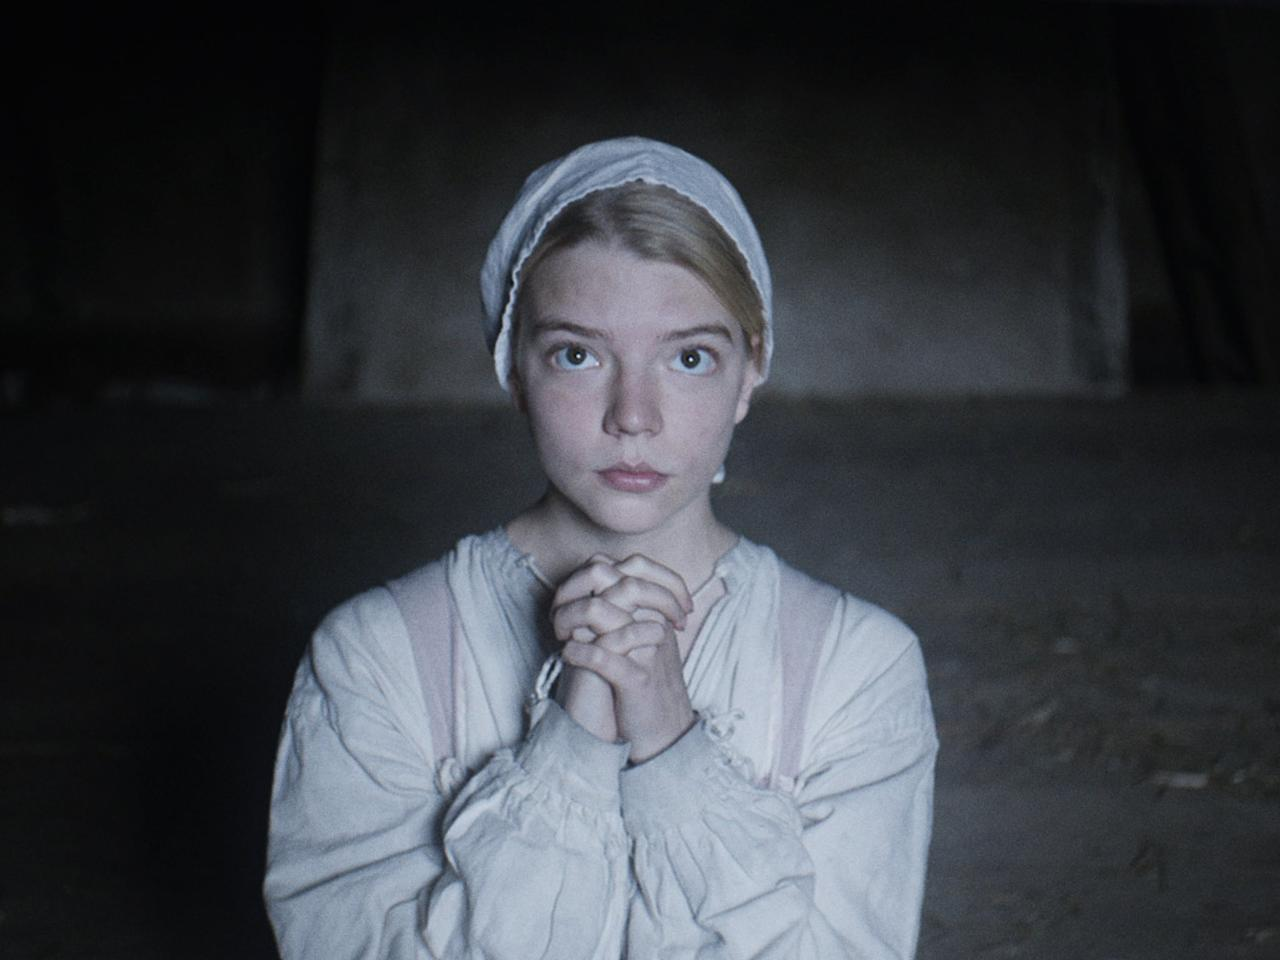 """<p>Anya Taylor-Joy plays Thomasin stars in this horror flick as a young woman who witnesses the disappearance of her youngest brother in 1630 New England and - as a result - is accused of witchcraft. Taylor-Joy plays Thomasin with such conviction that you actually believe she's trapped in a 17th-century waking nightmare, though her frightfully good performance is only matched by the demonic humanoid goat, Black Phillip. </p> <p><a href=""""http://www.netflix.com/title/80037280"""" target=""""_blank"""" class=""""ga-track"""" data-ga-category=""""Related"""" data-ga-label=""""http://www.netflix.com/title/80037280"""" data-ga-action=""""In-Line Links"""">Watch <strong>The Witch </strong>on Netflix</a>. </p>"""